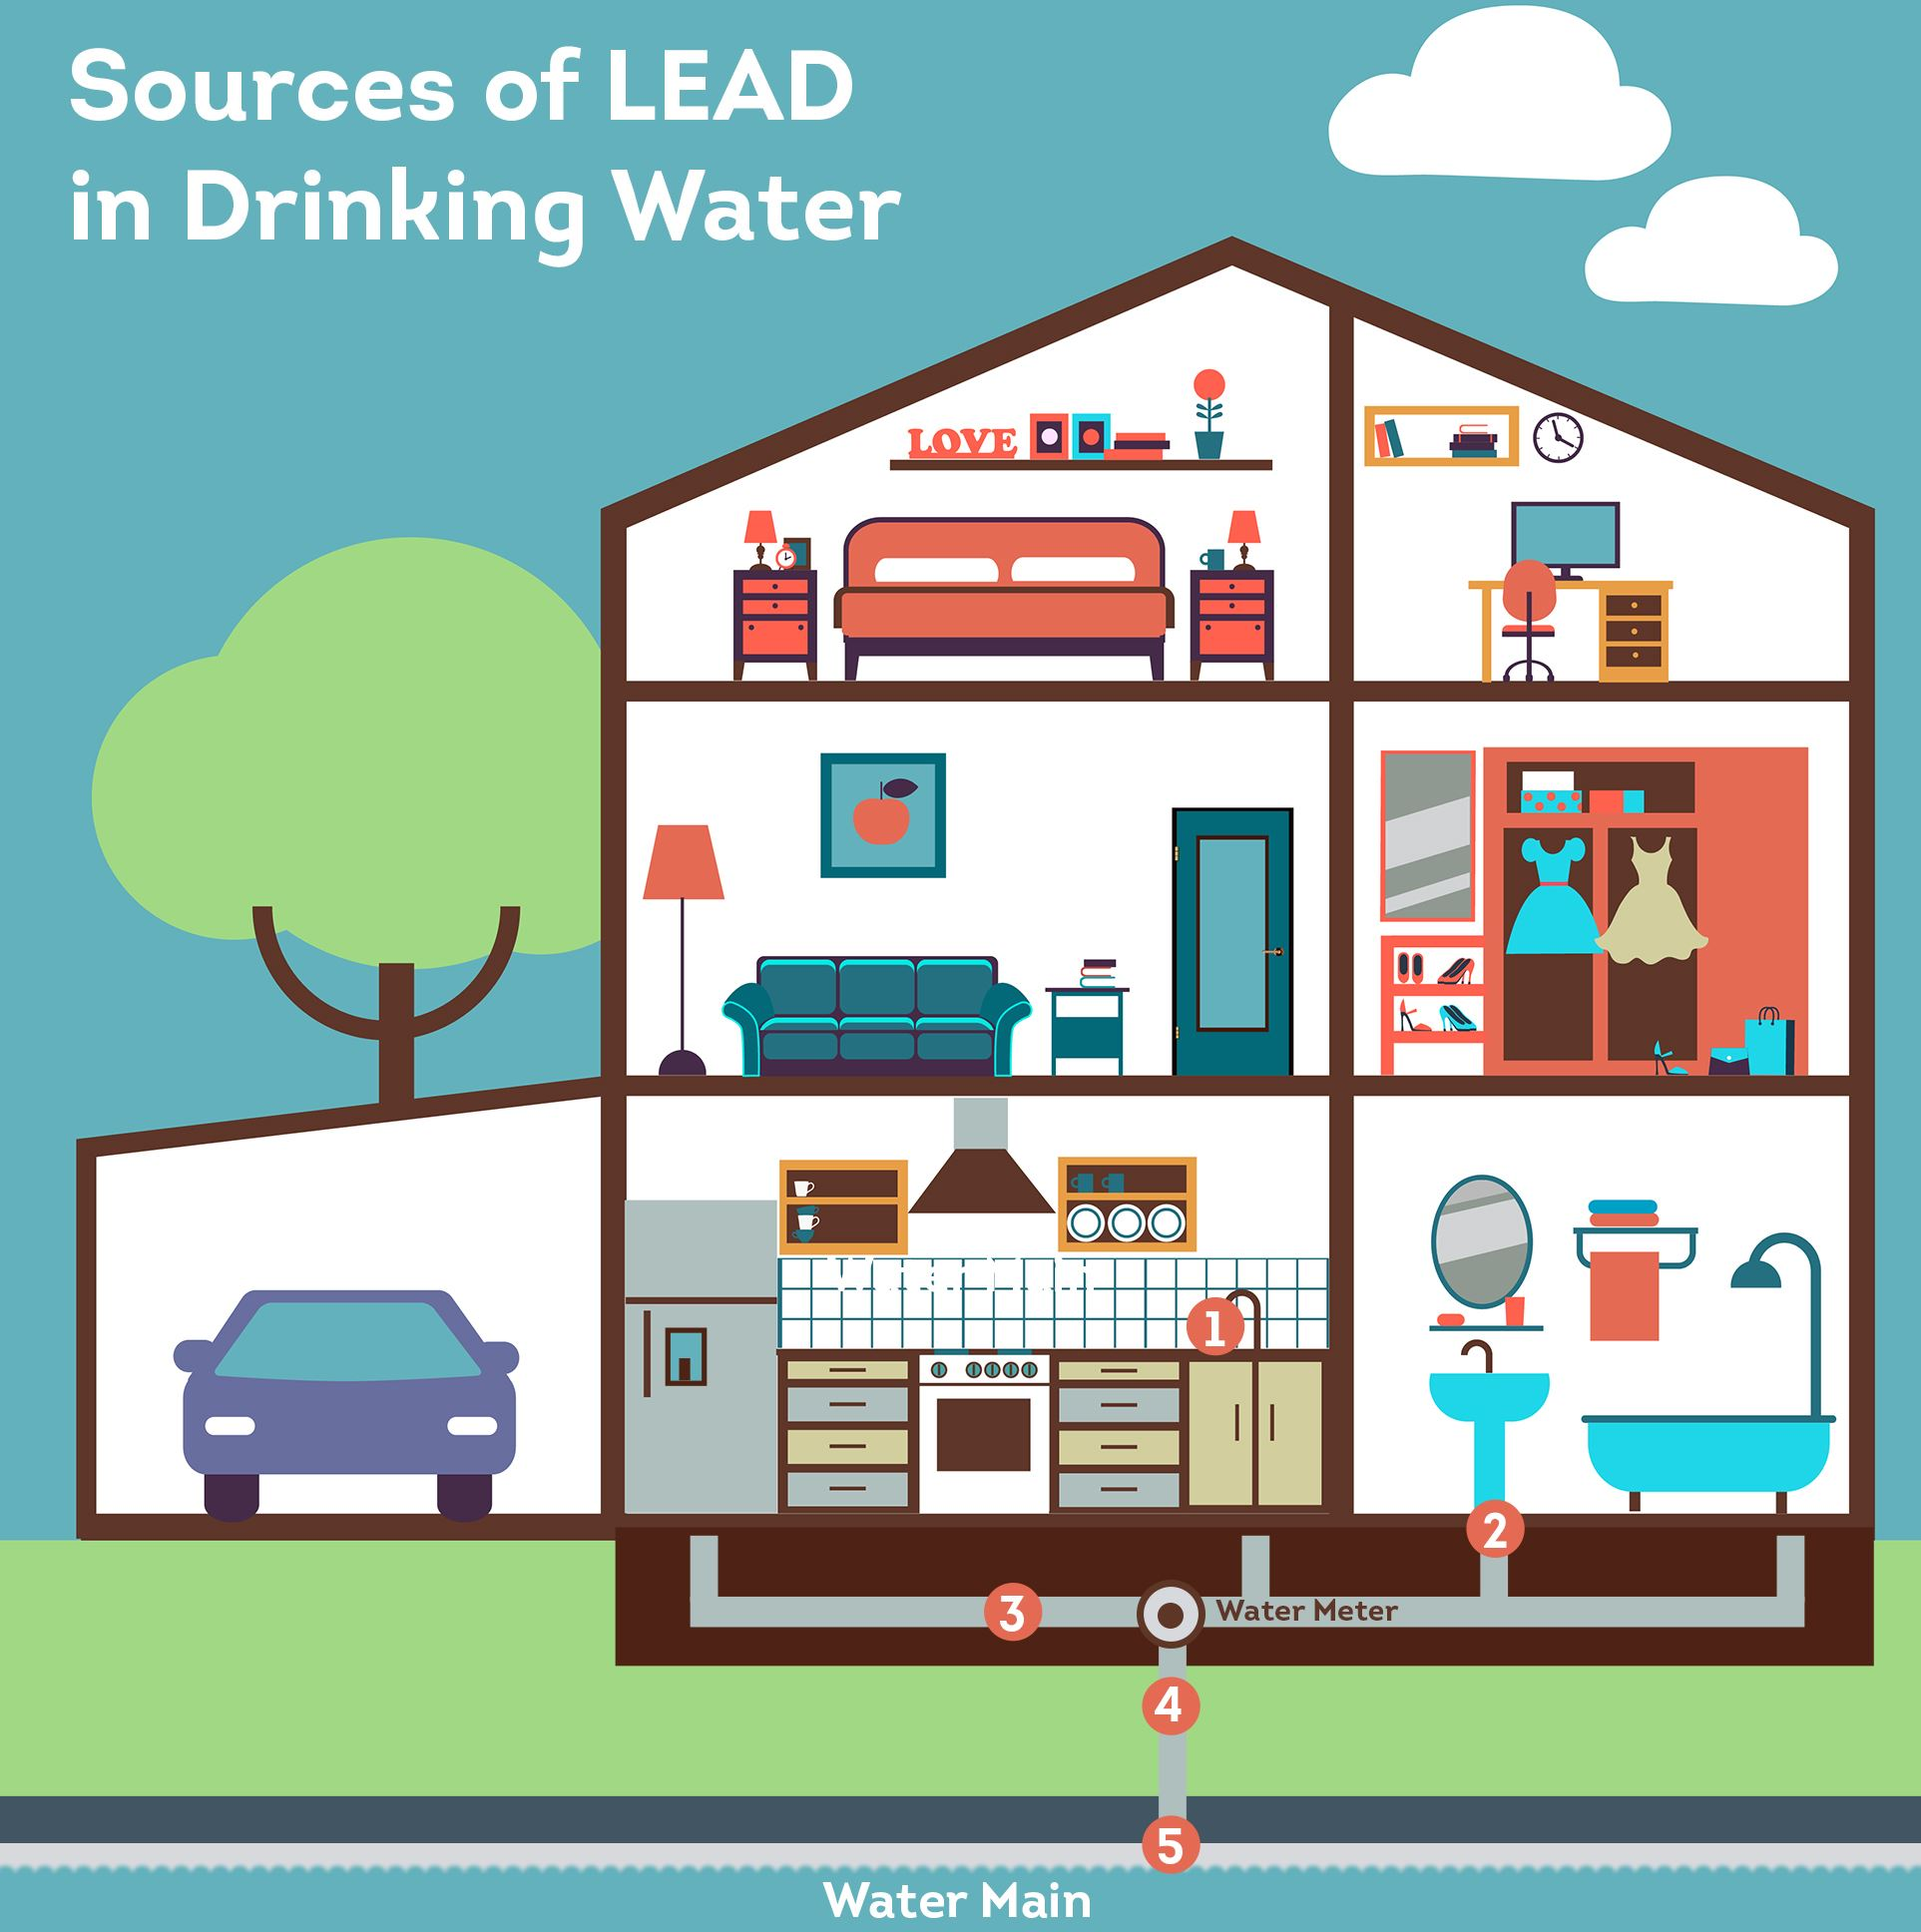 Sources of Lead in Drinking Water